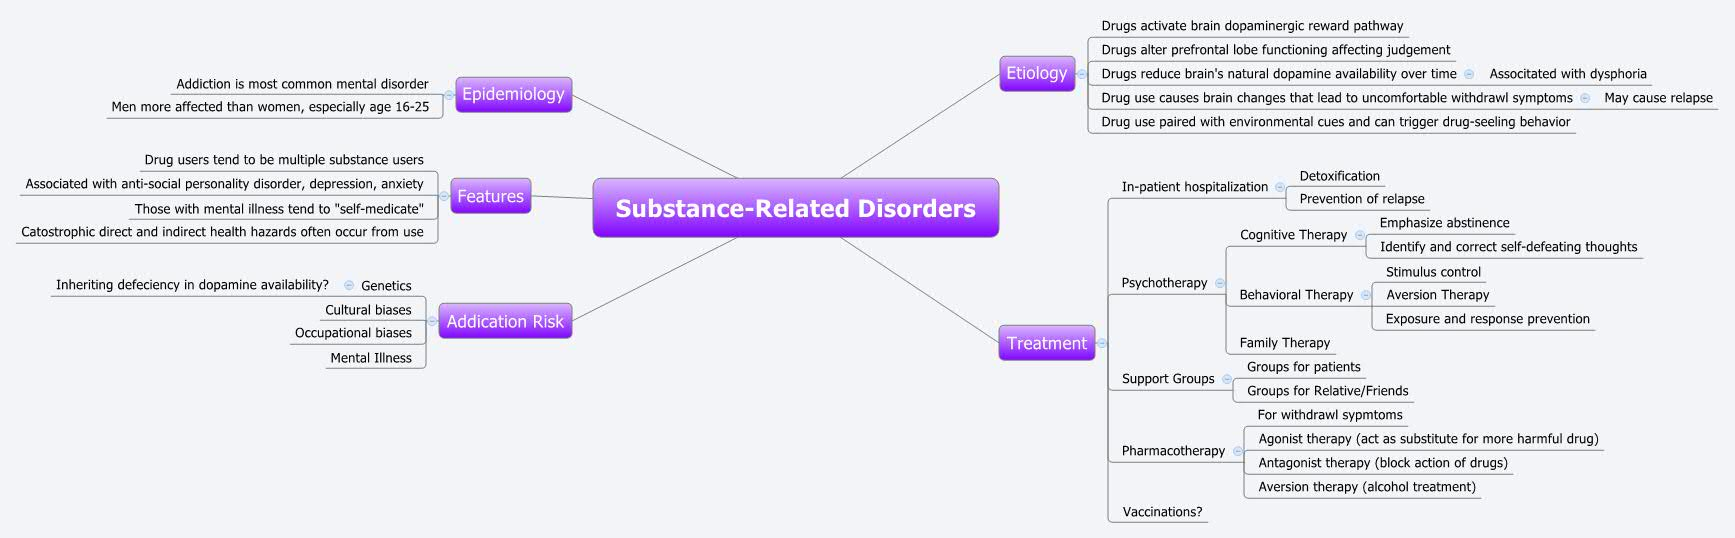 Substance-Related Disorders - XMind - Mind Mapping Software